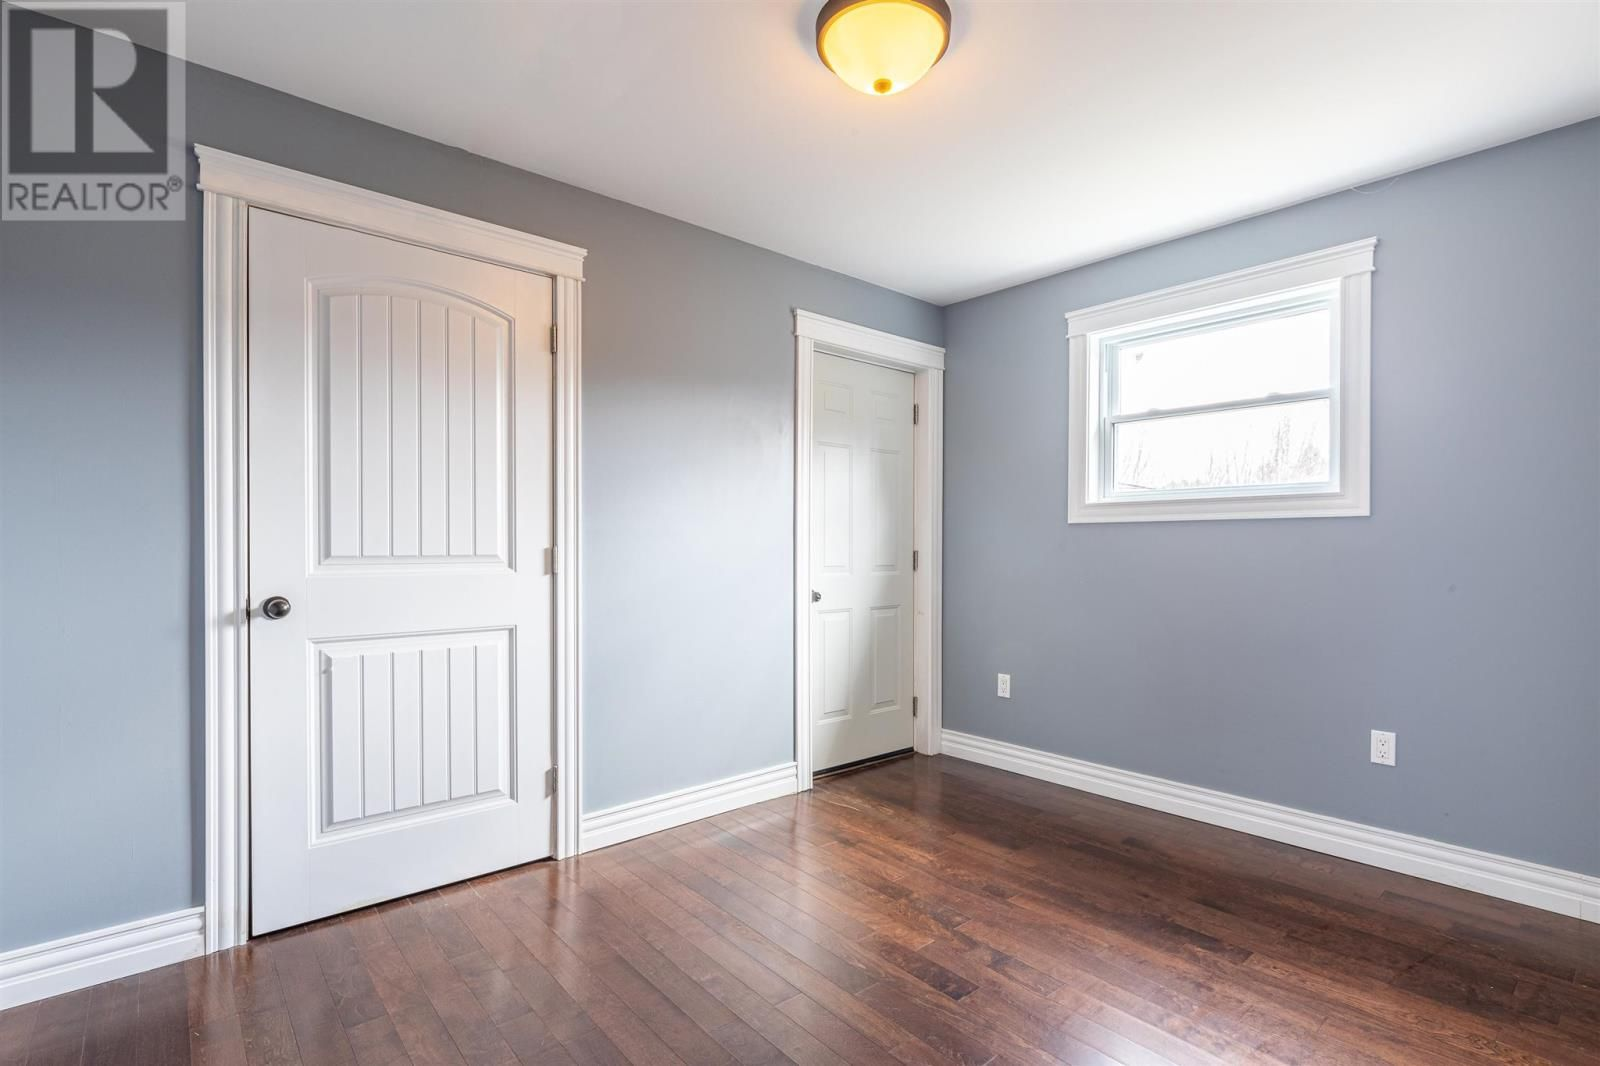 Photo 28: Photos: 5 Cherry Lane in Stratford: House for sale : MLS®# 202119303